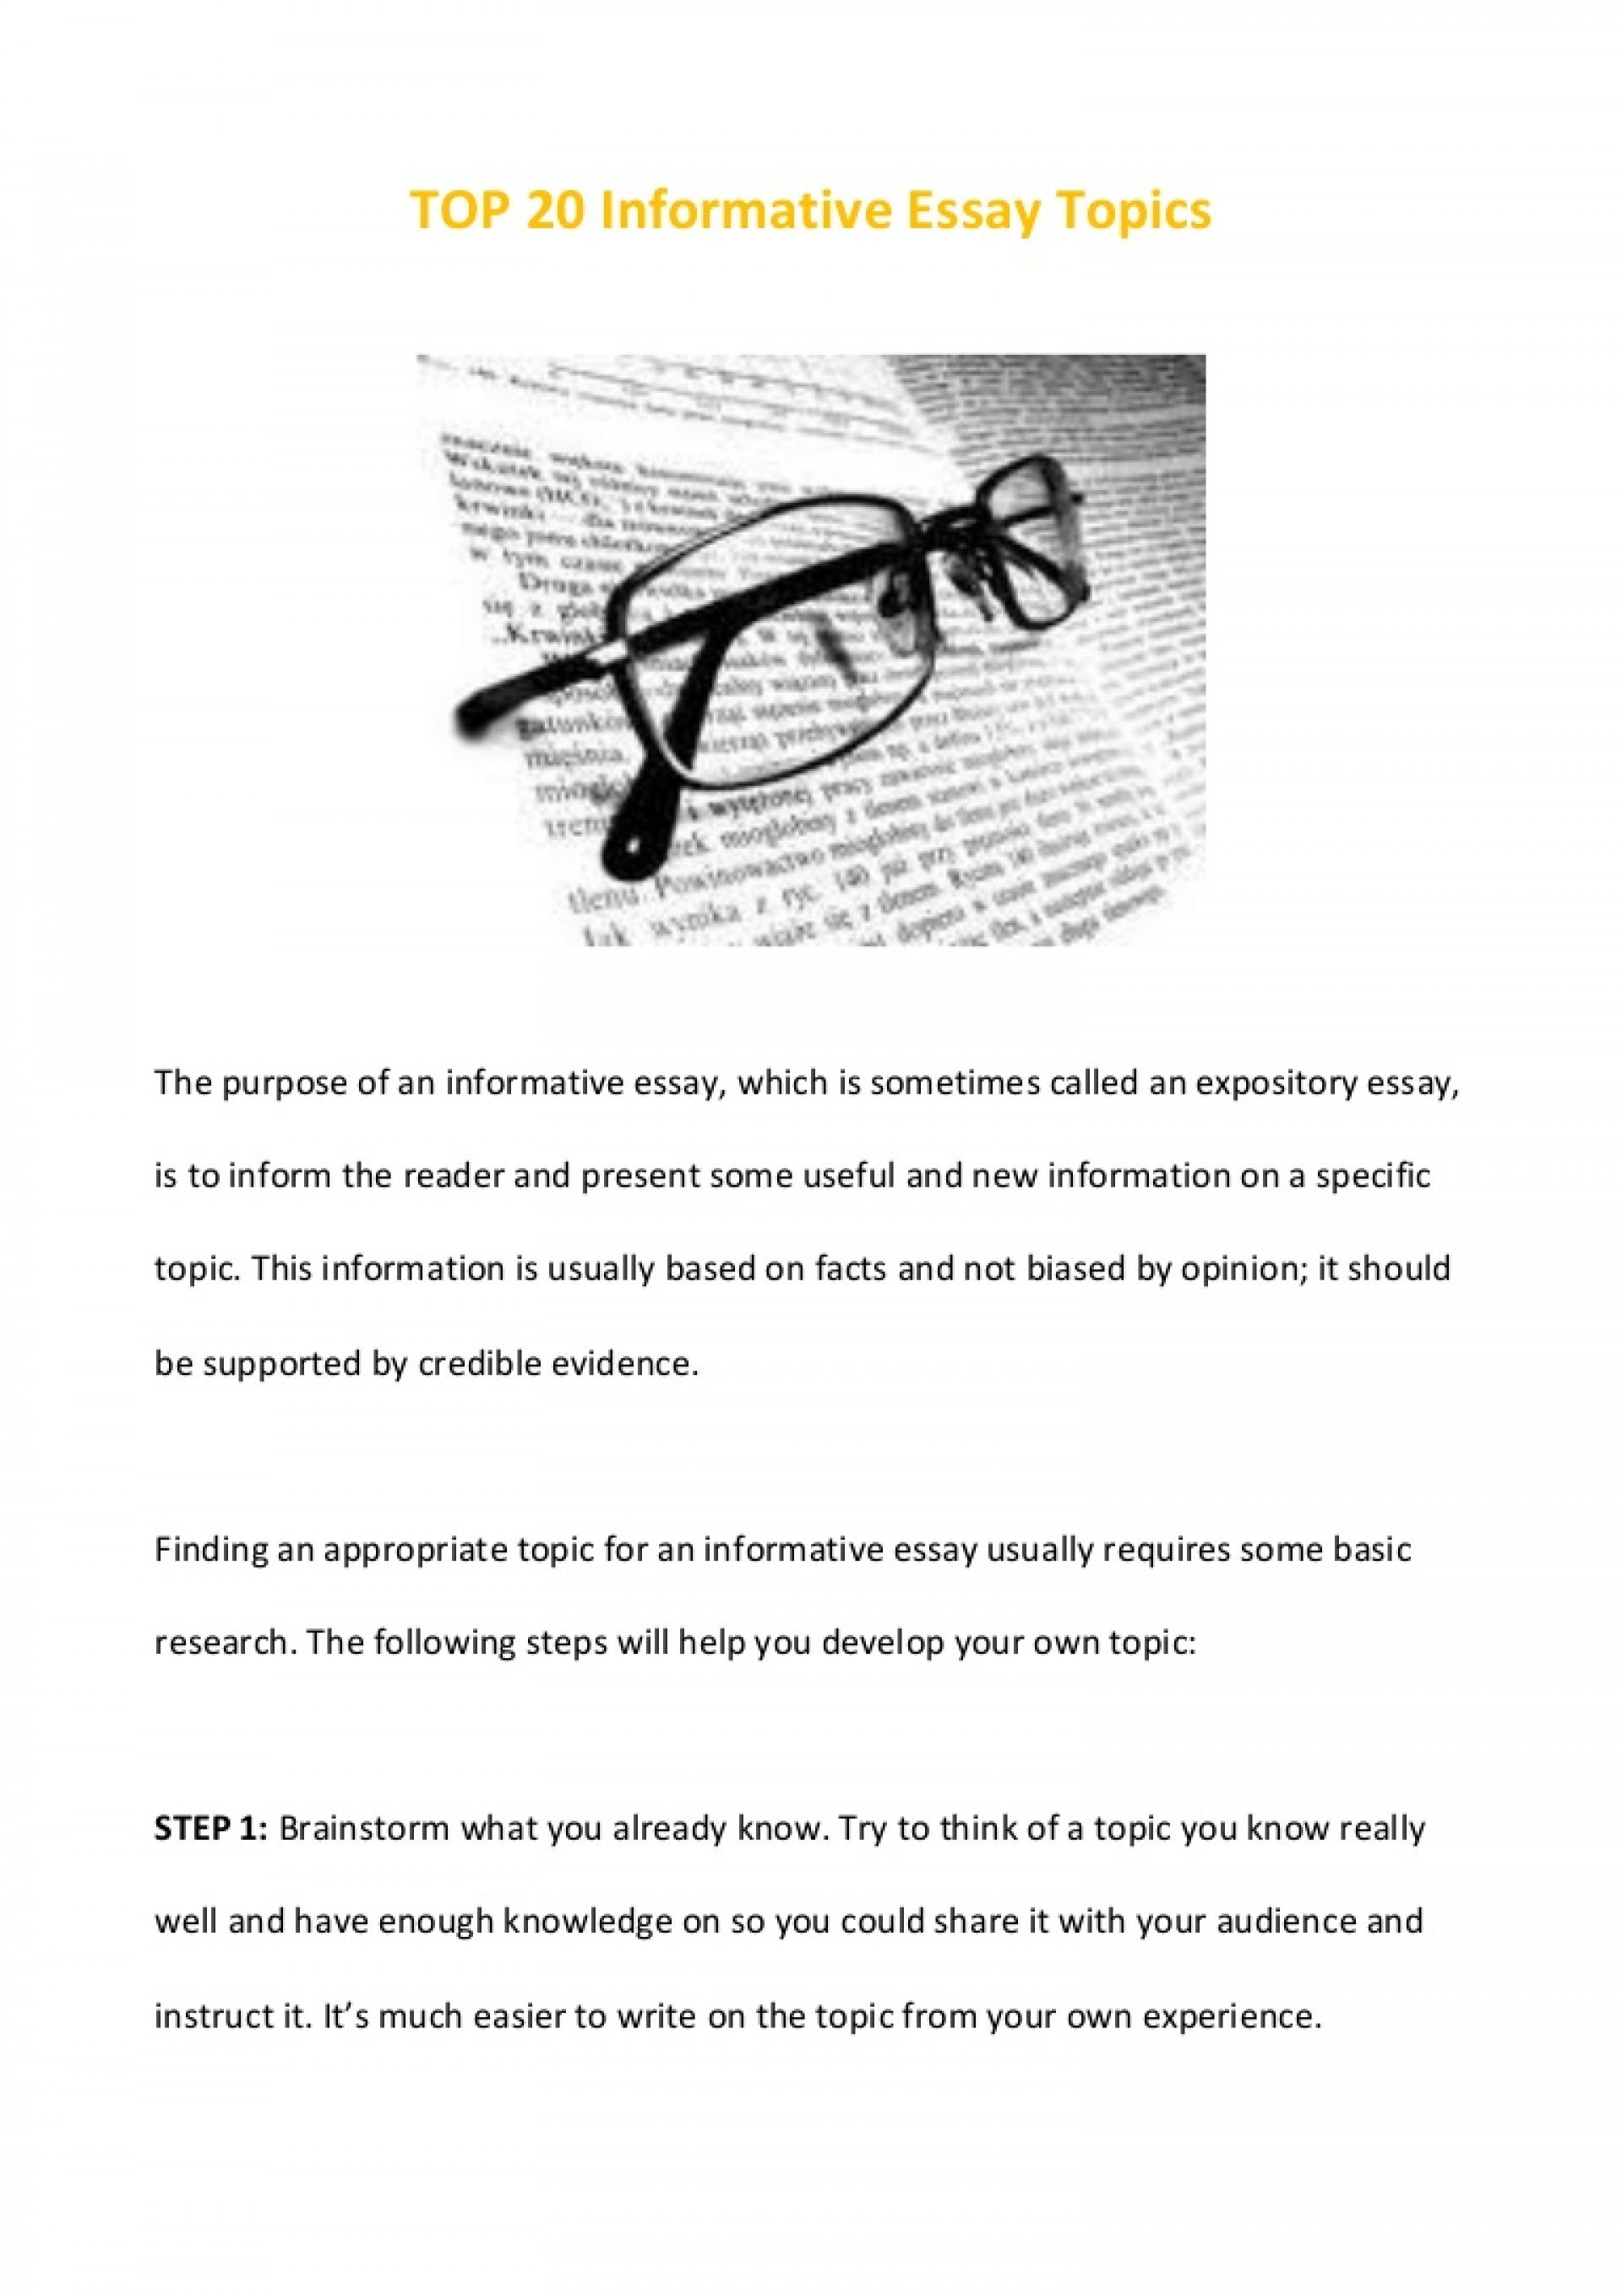 011 Essay Example Top20informativeessaytopics Phpapp02 Thumbnail Informative Remarkable Topics Expository For 5th Grade Paper College Prompts Middle School 1920